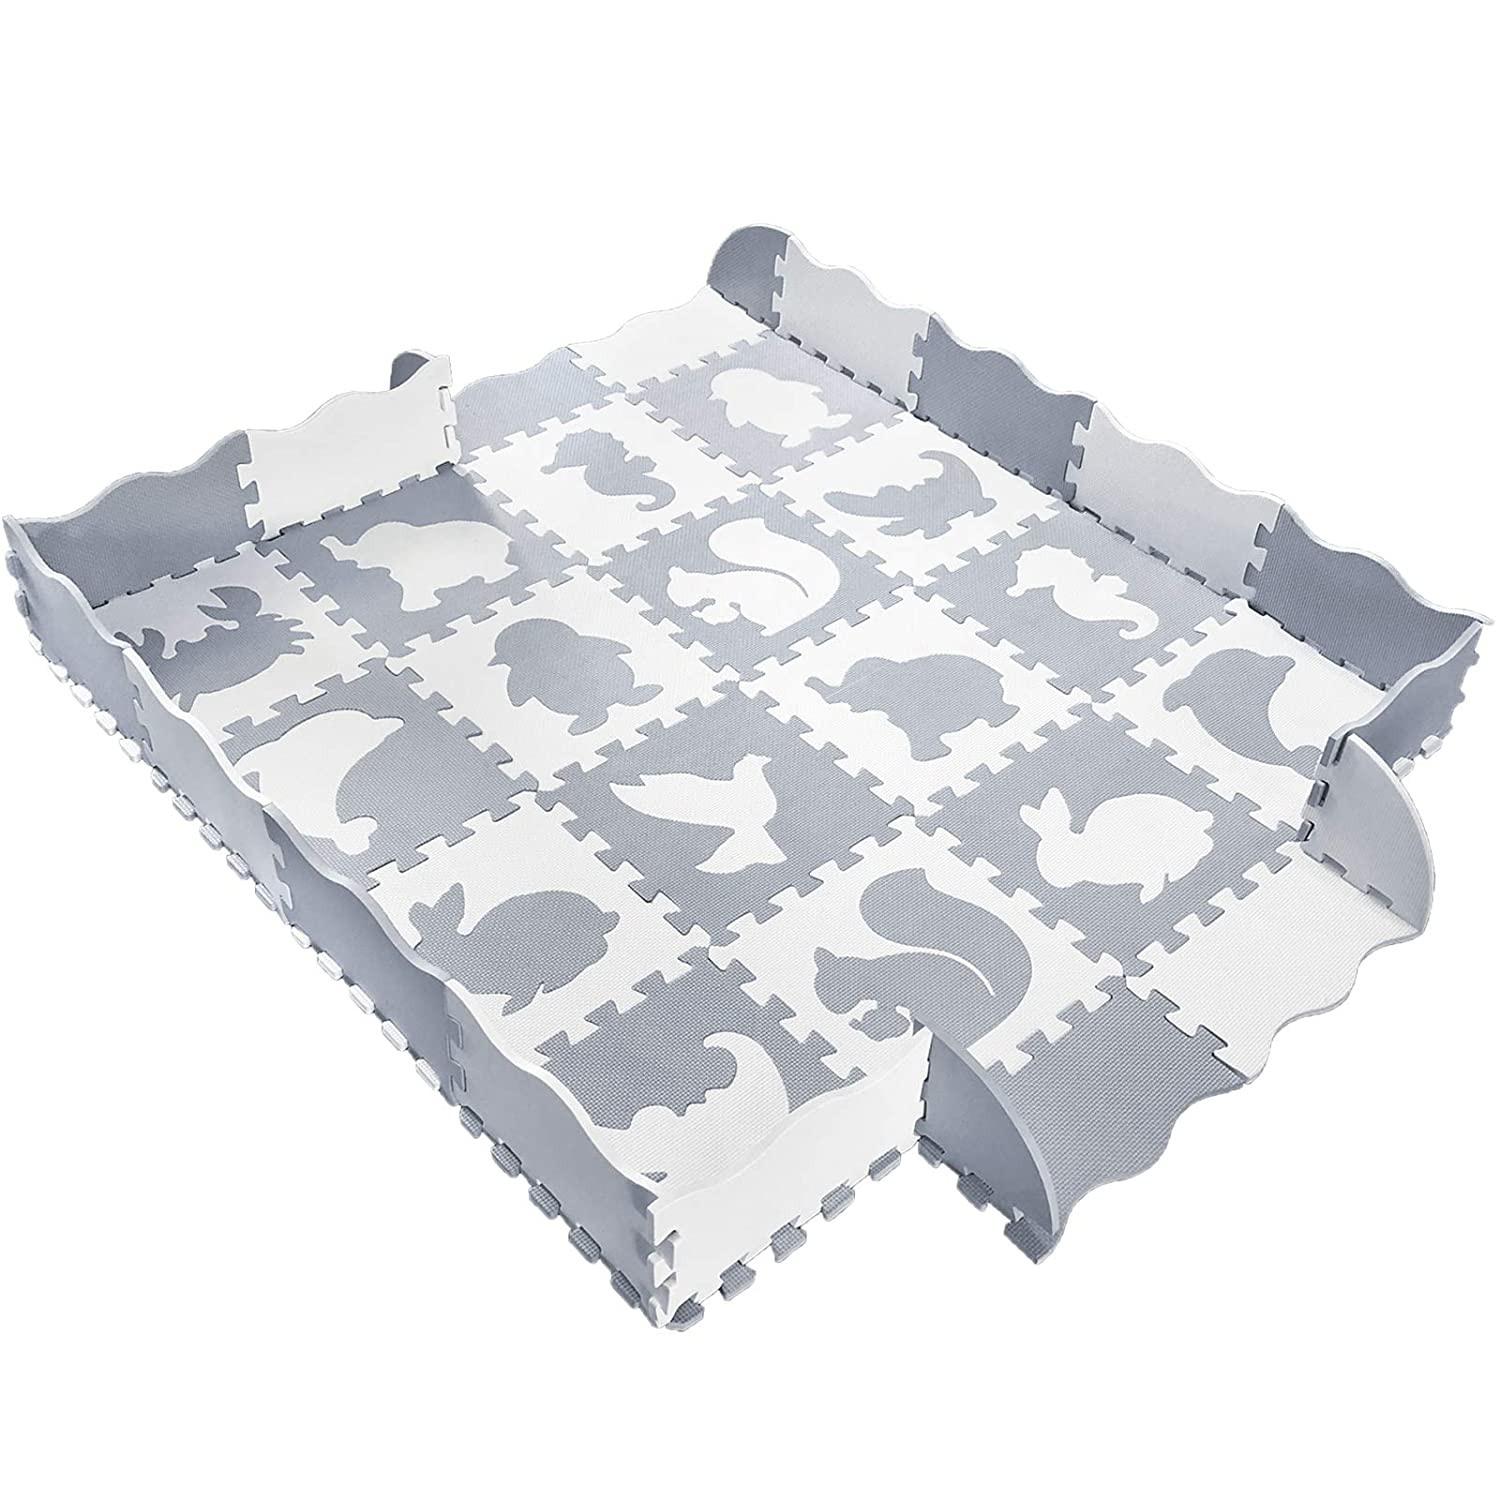 Baby Play Mat with Fence, Animals, and Foam Tiles. Tummy time mat, Playmat for Kids, Toddlers, Infants. Activity Center, Ball Pit Gym Floor playpen. 57'x 57', Over 74' Across!